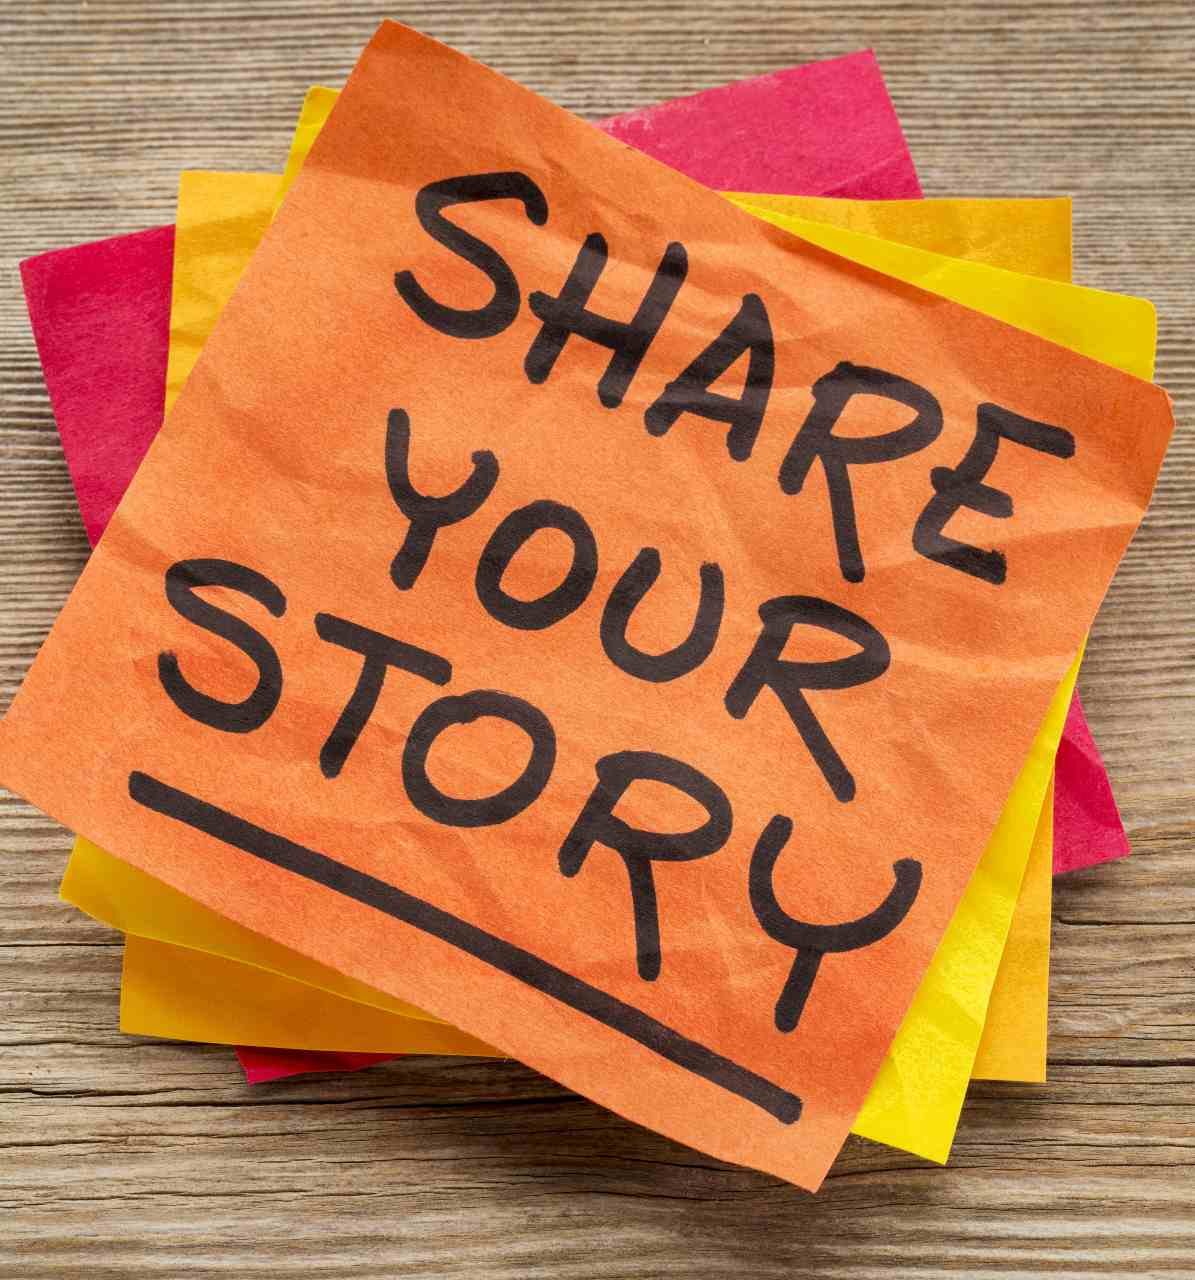 post it note with share your story for engaging content